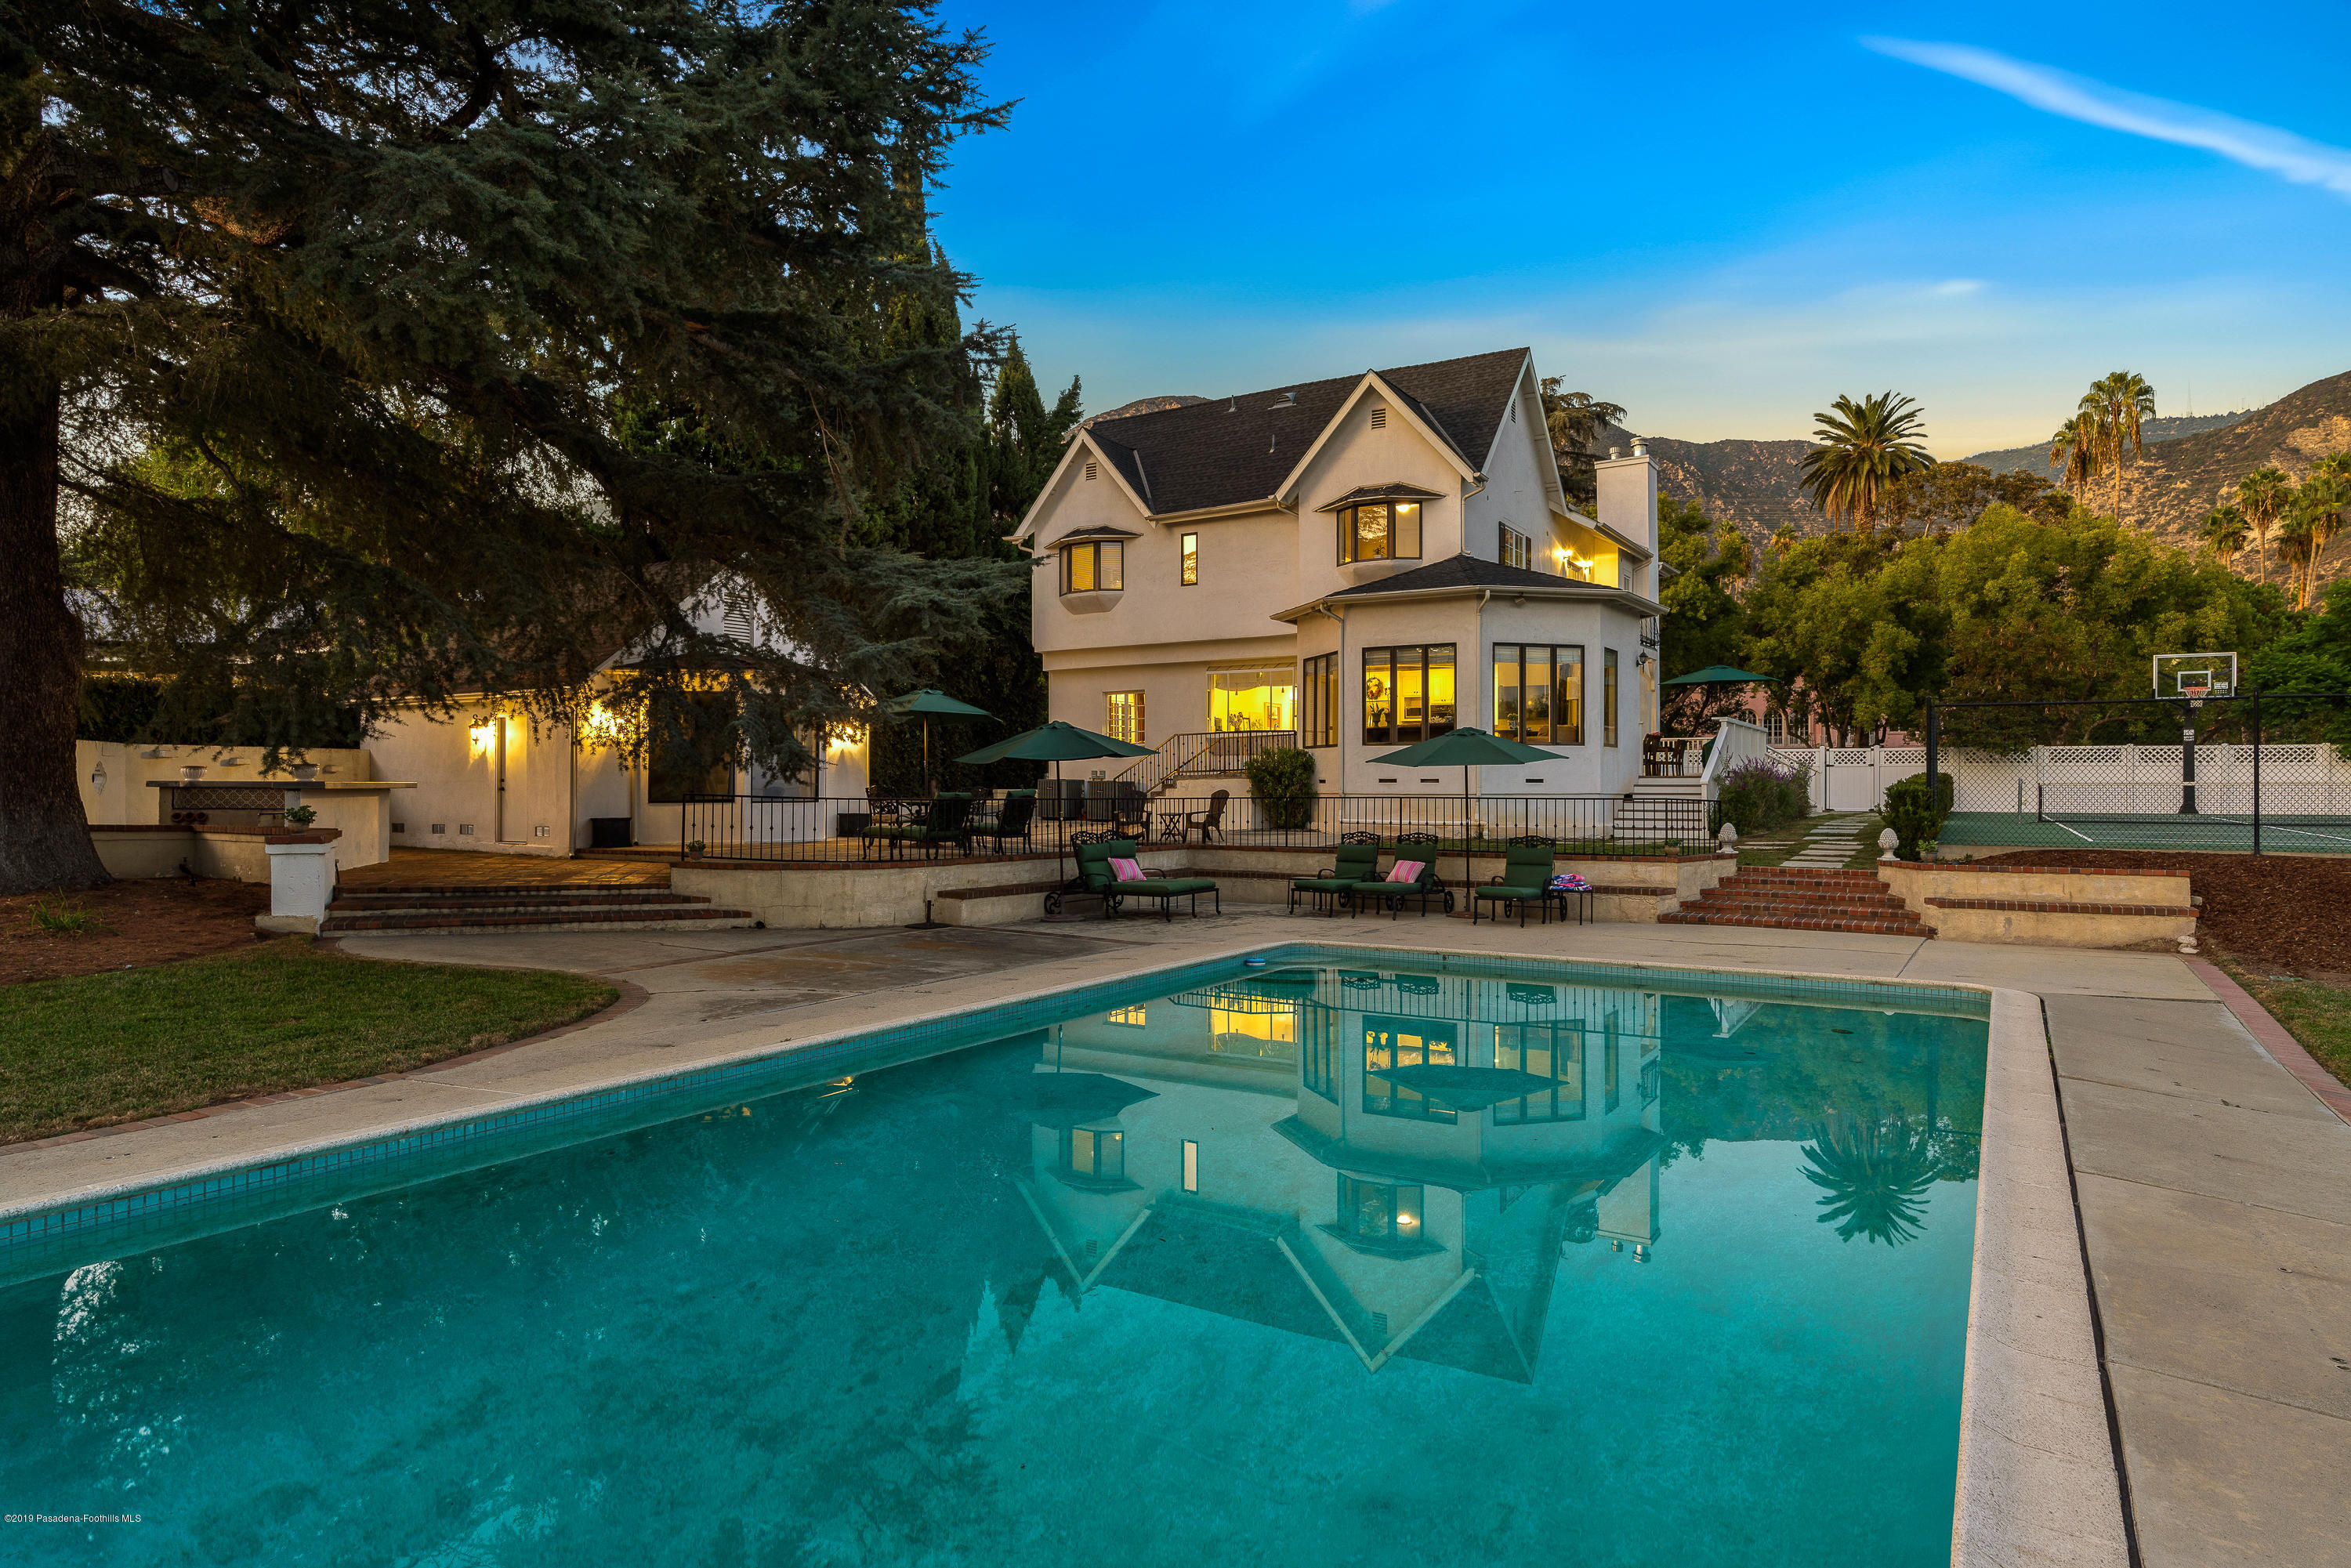 1964 Glenview Terrace, one of homes for sale in Altadena